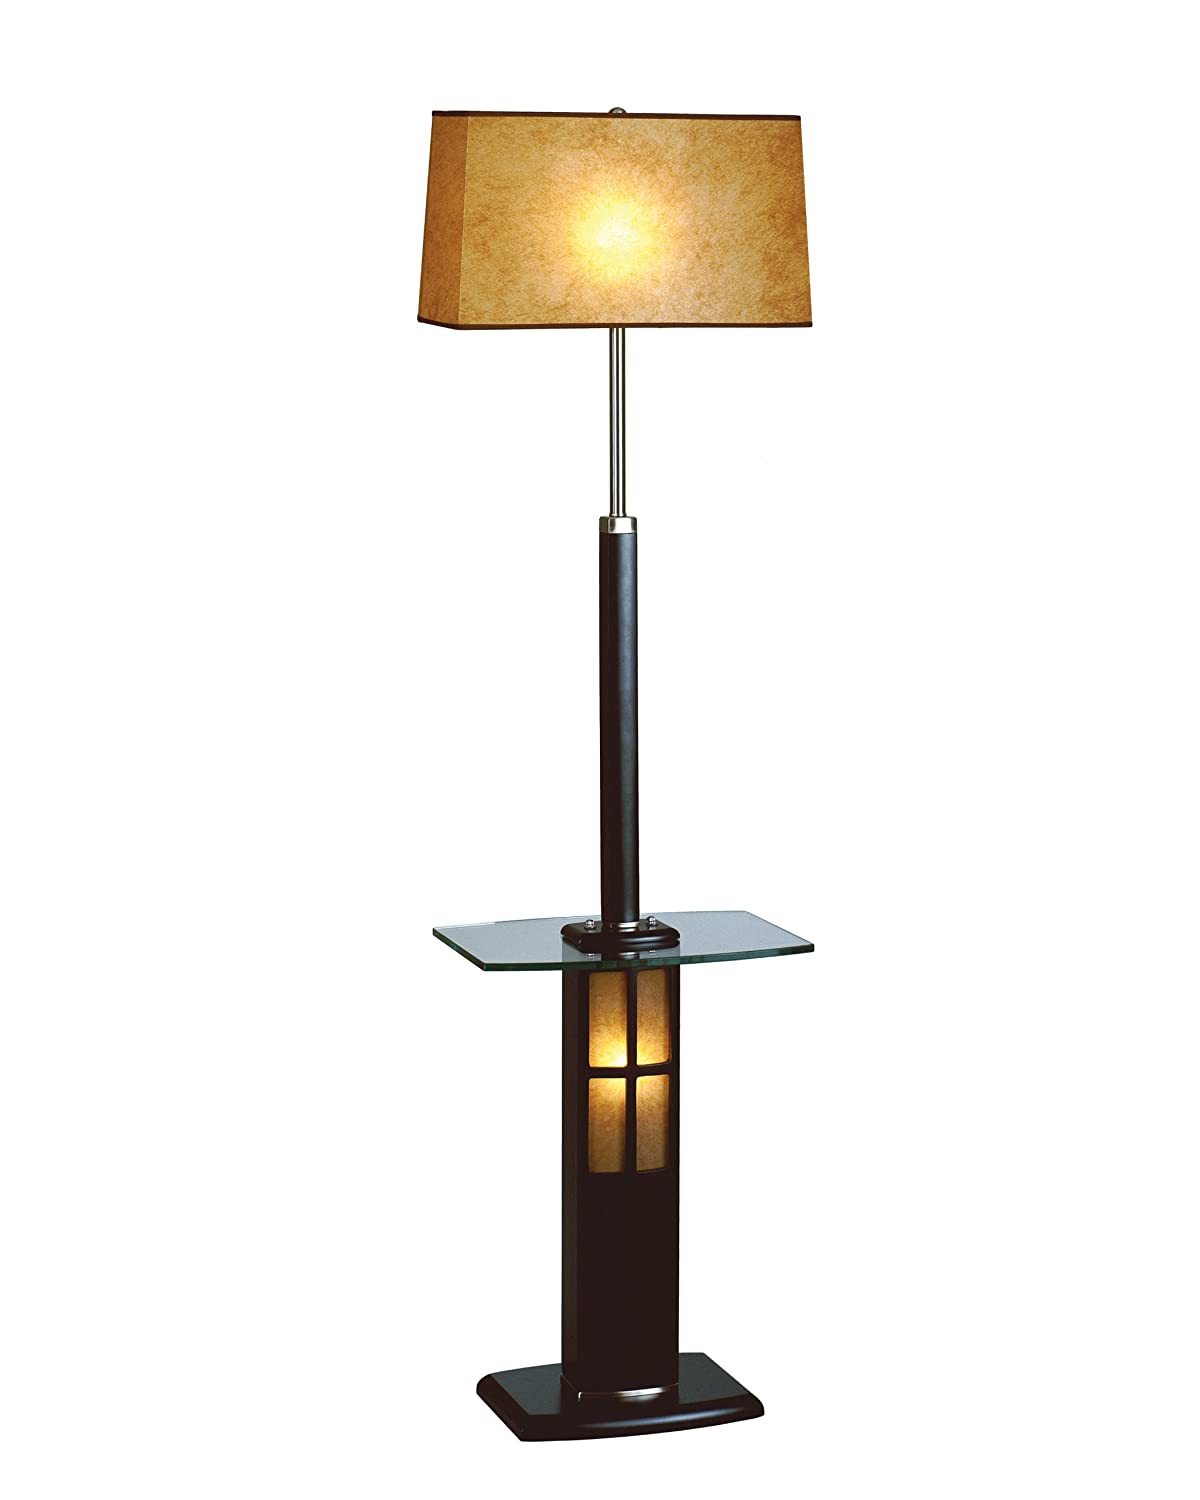 lamp with attached table brushed nickel wood with lighted lamp base. Black Bedroom Furniture Sets. Home Design Ideas